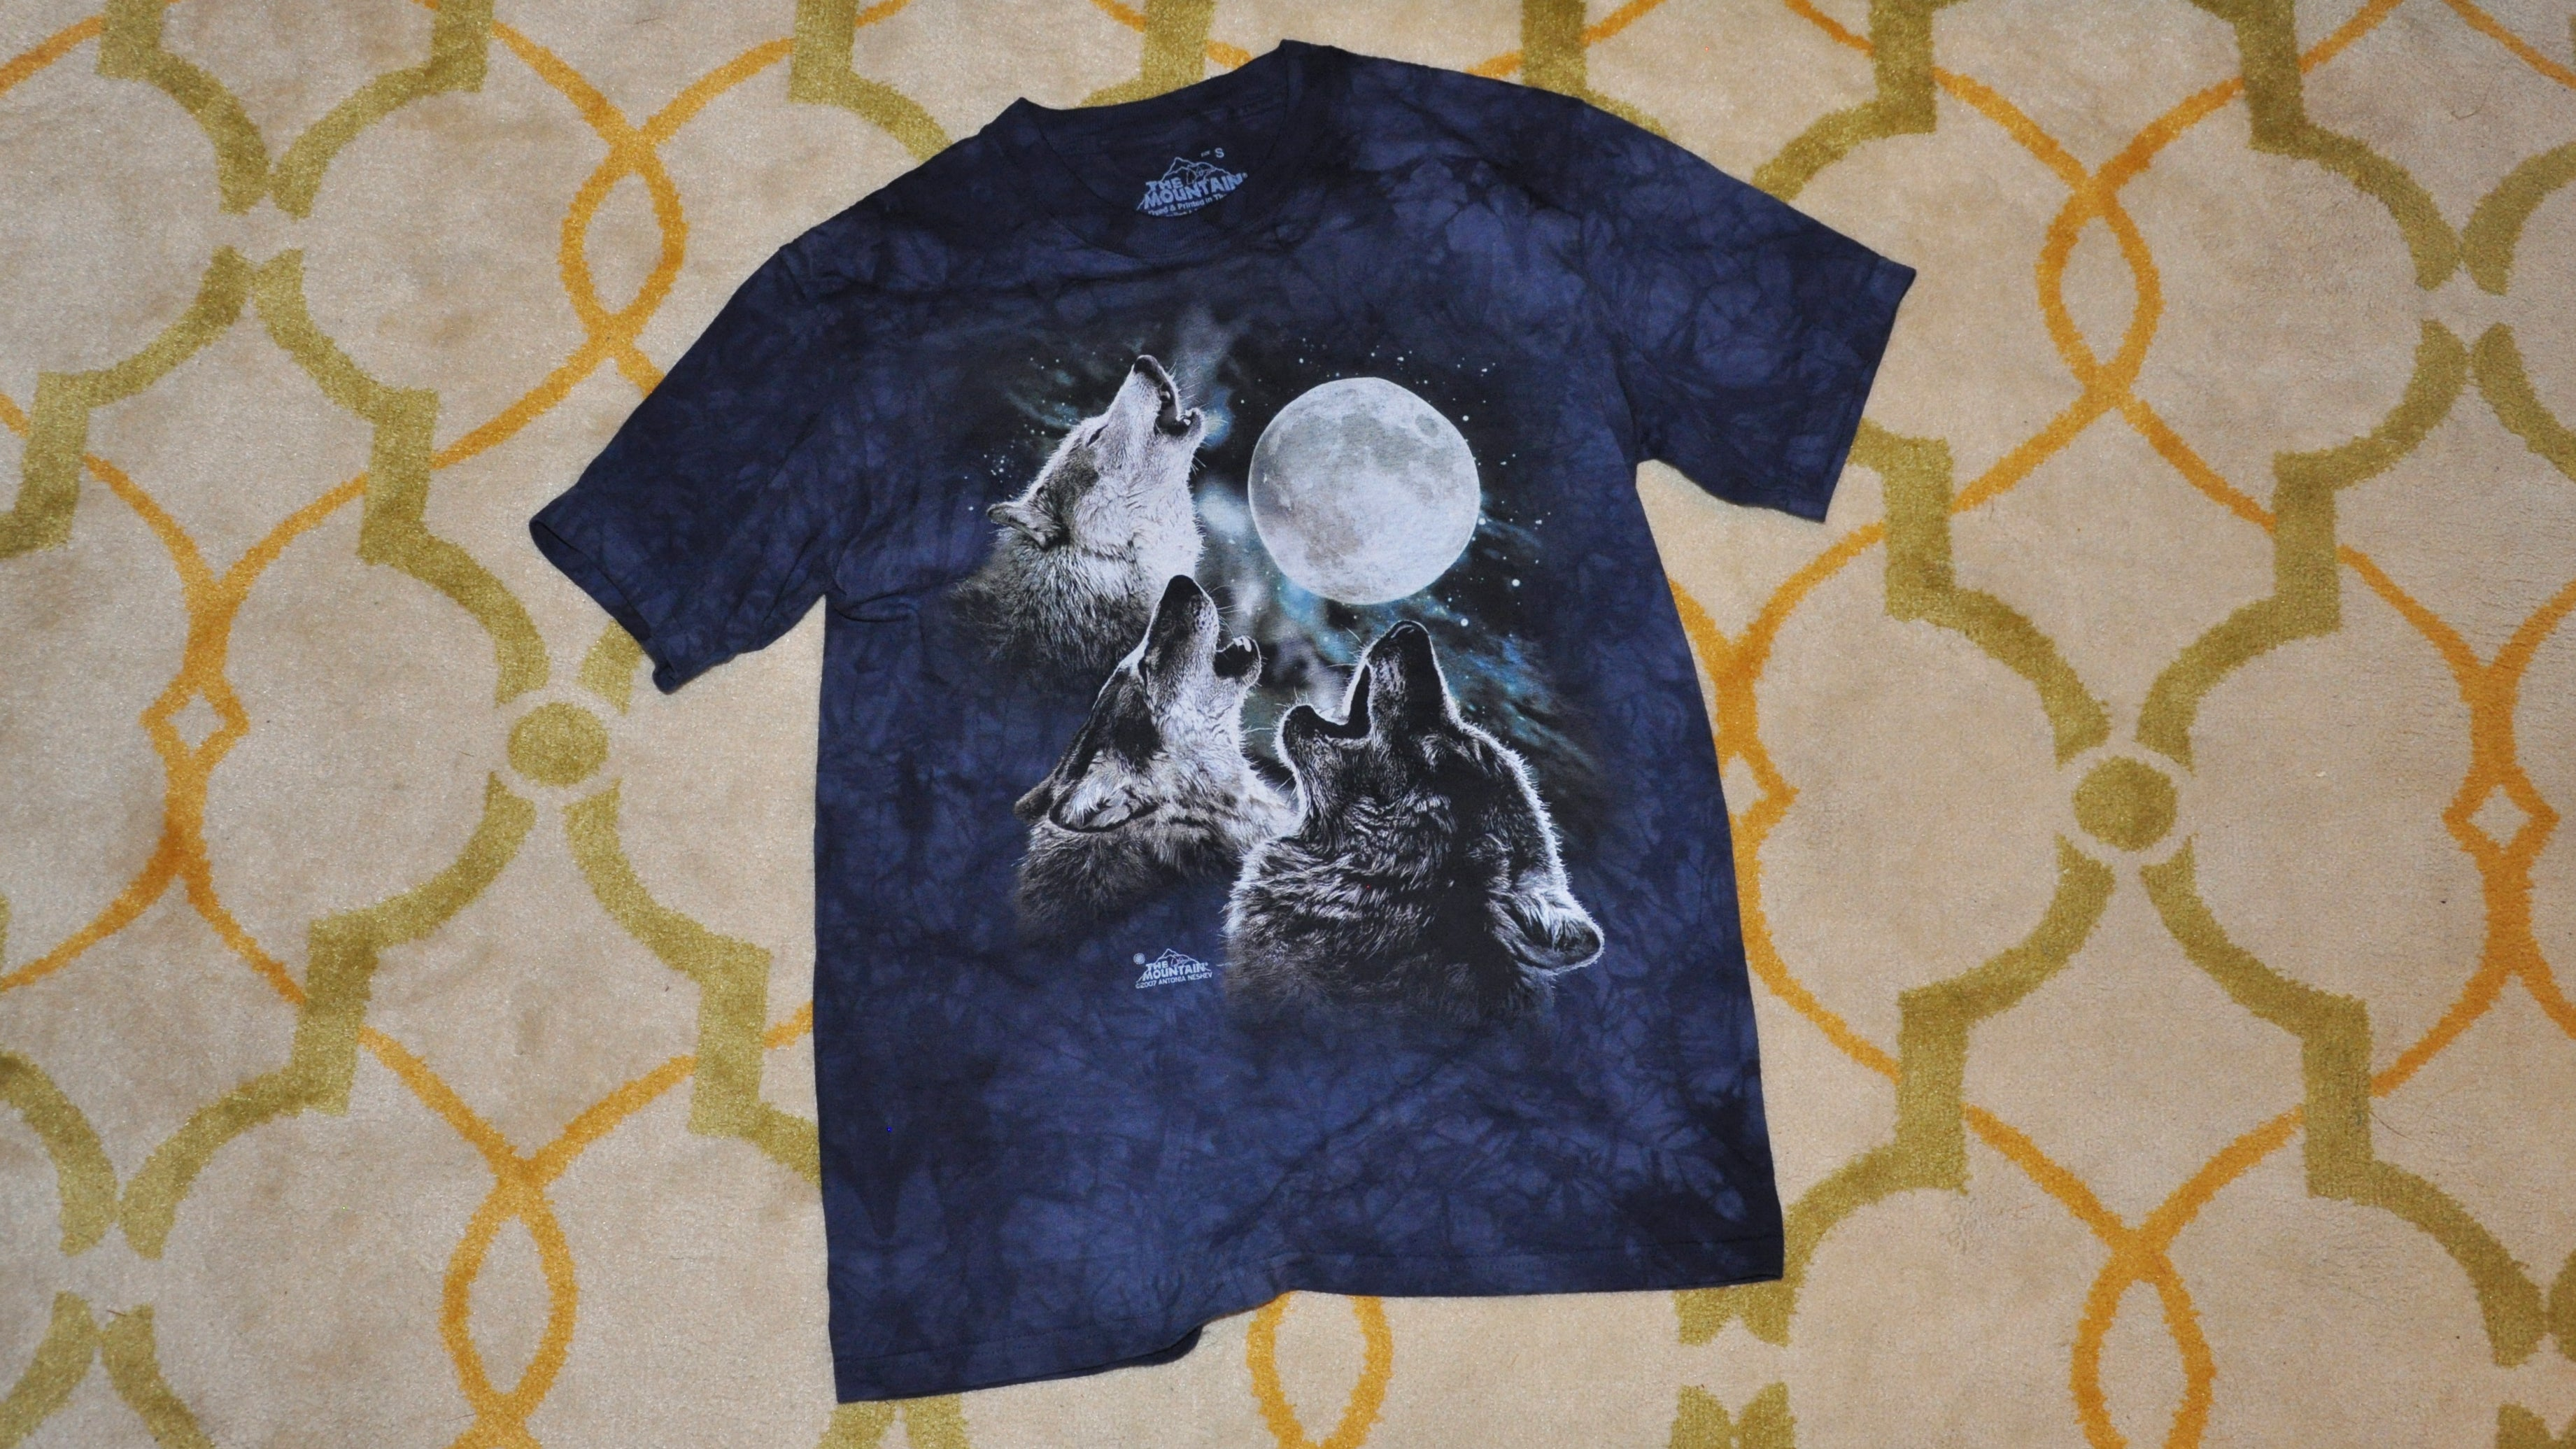 A T-Shirt Connoisseur Reviews the Renowned Three Wolf Moon Shirt